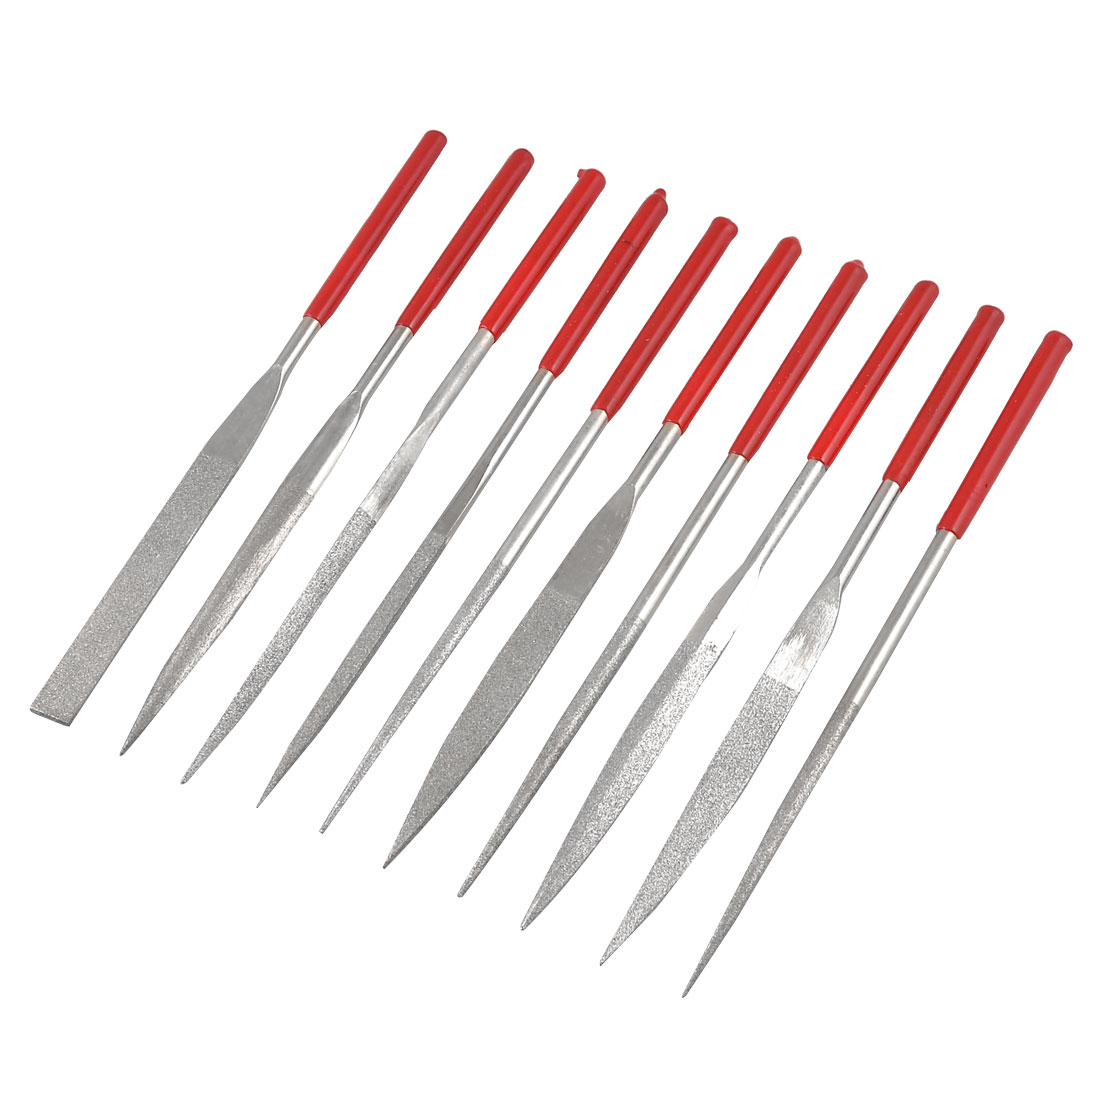 10 Pcs 180mm X 5mm Equalling Square Round Triangle Crossing Diamond Needle Files